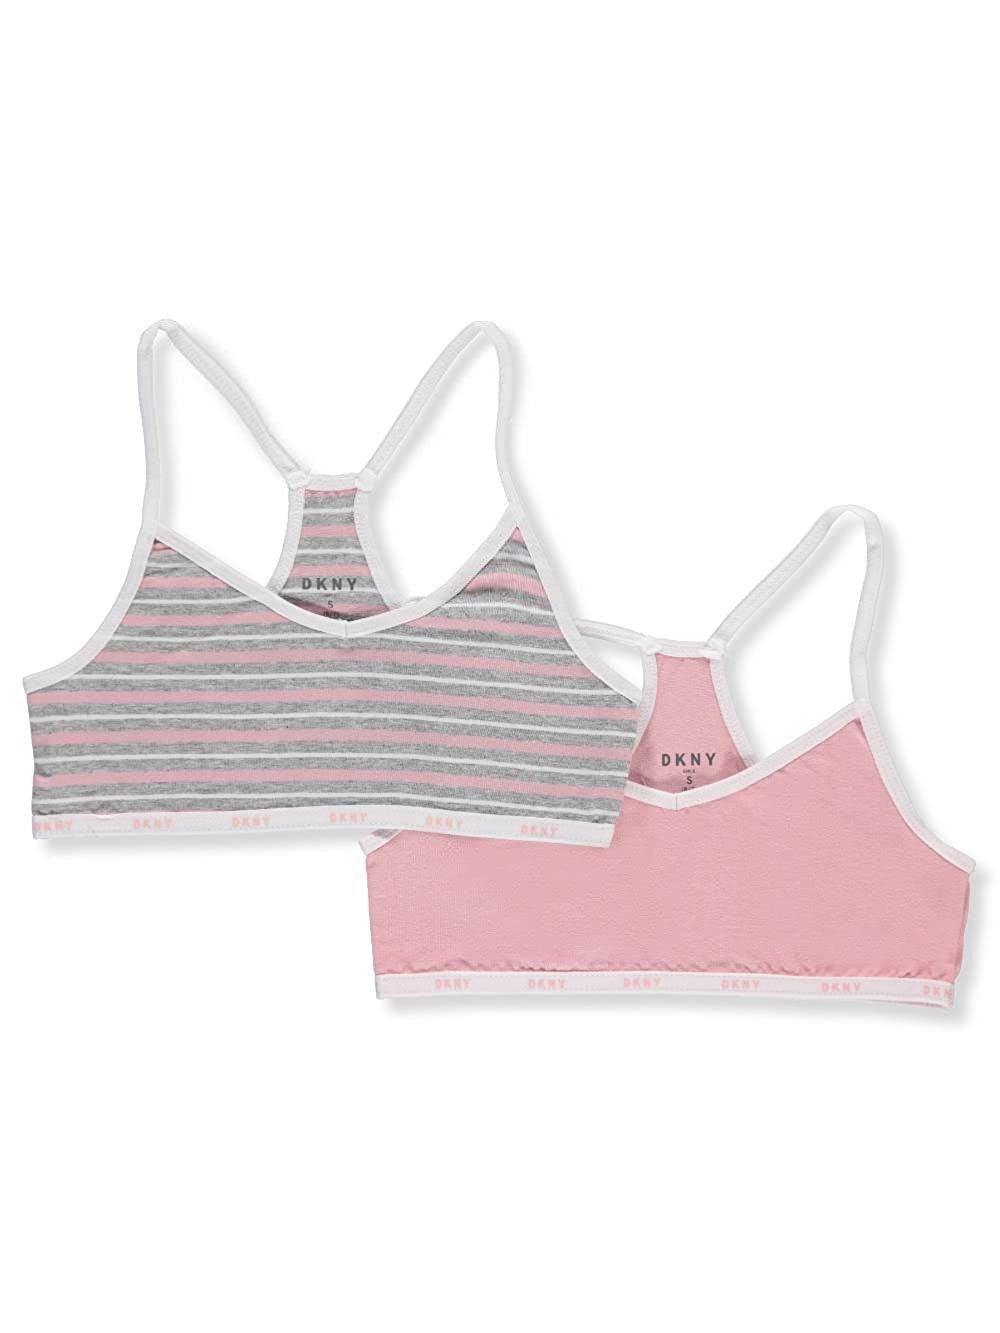 DKNY Girls' 2-Pack Racer Back Bralettes